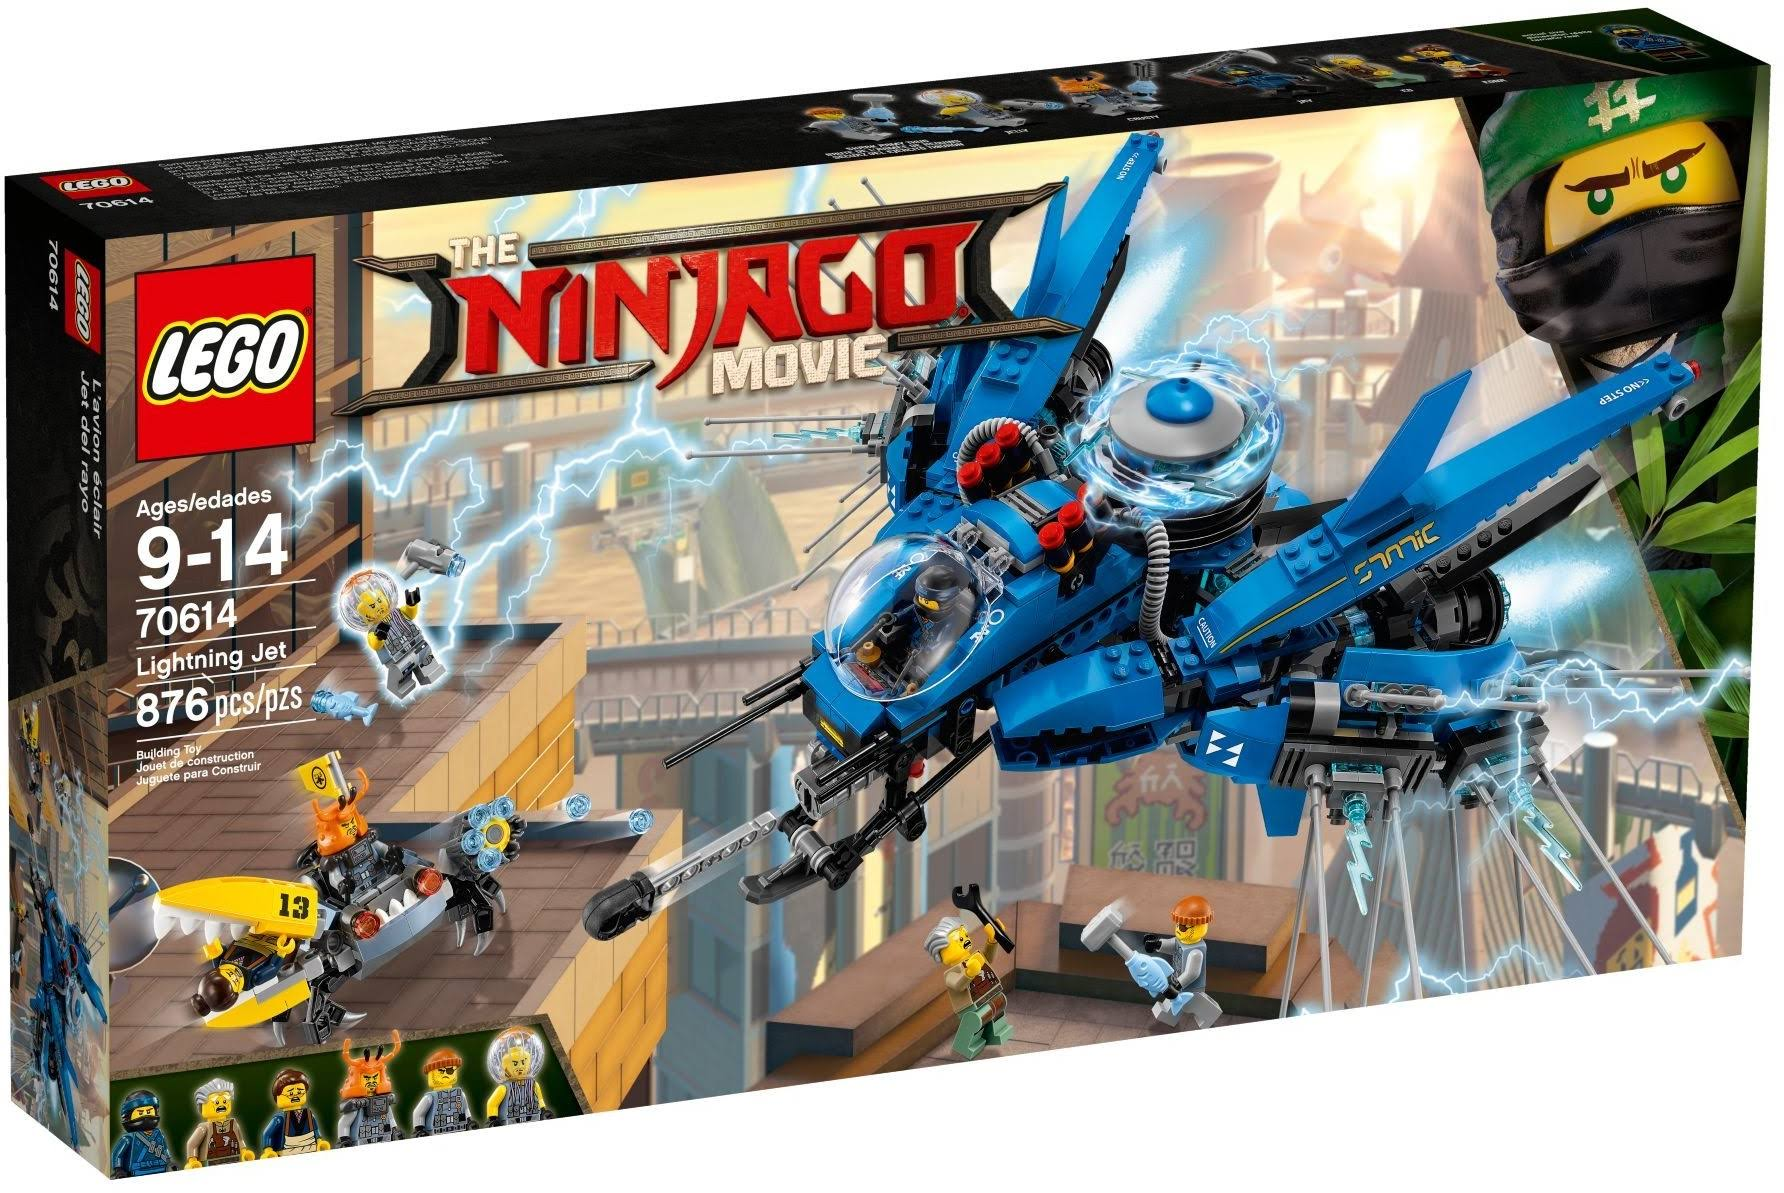 Lego 70614 The Ninjago Movie Lightning Jet Building Toy - 876pcs